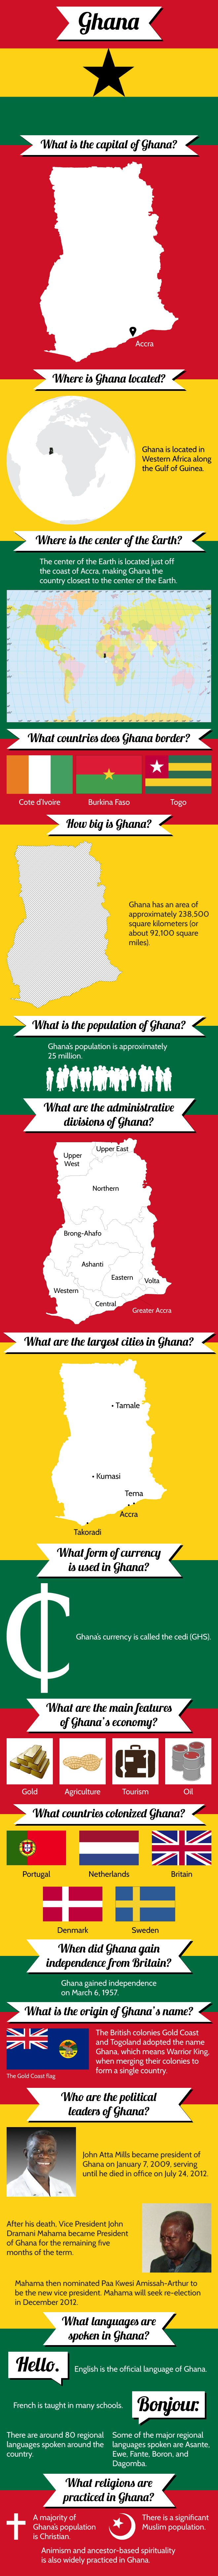 Infographic of  #Ghana Fast Facts 	http://www.mapsofworld.com/pages/fast-facts/infographic-of-ghana-fast-facts/